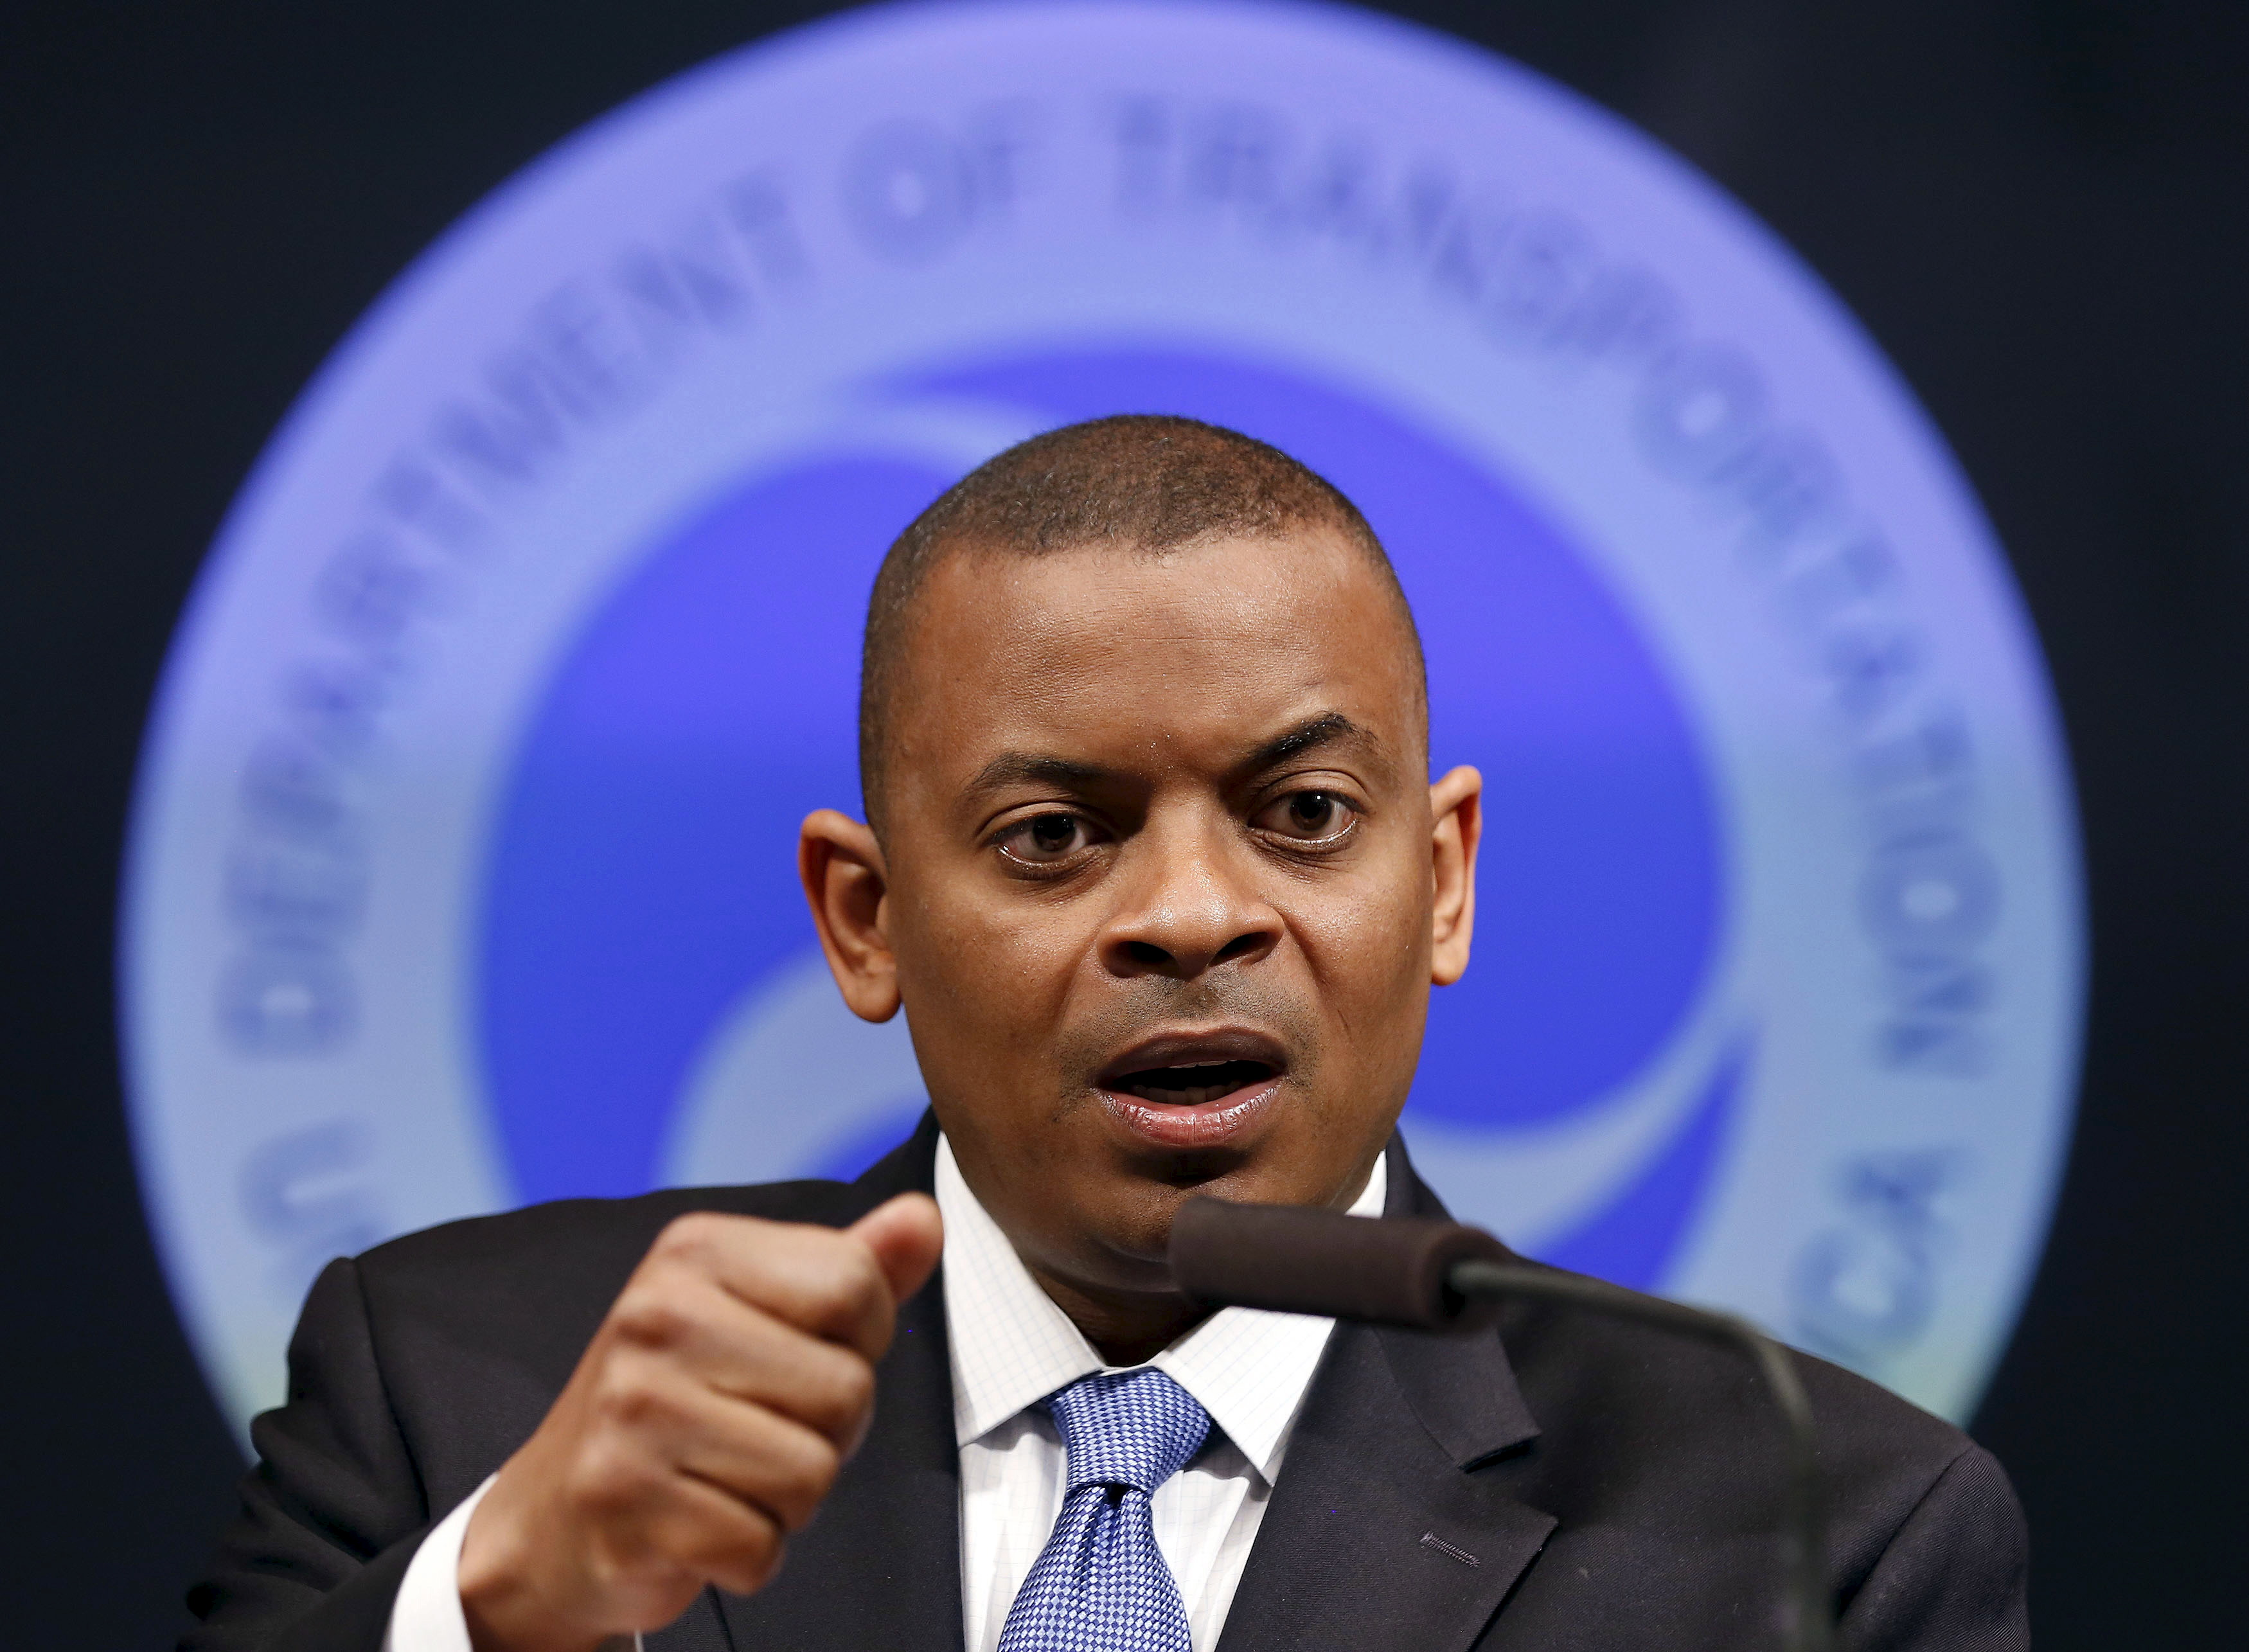 U.S. Transportation Secretary Anthony Foxx delivers an announcement at the Department of Transportation in Washington, U.S., May 16, 2014. REUTERS/Larry Downing/File Photo